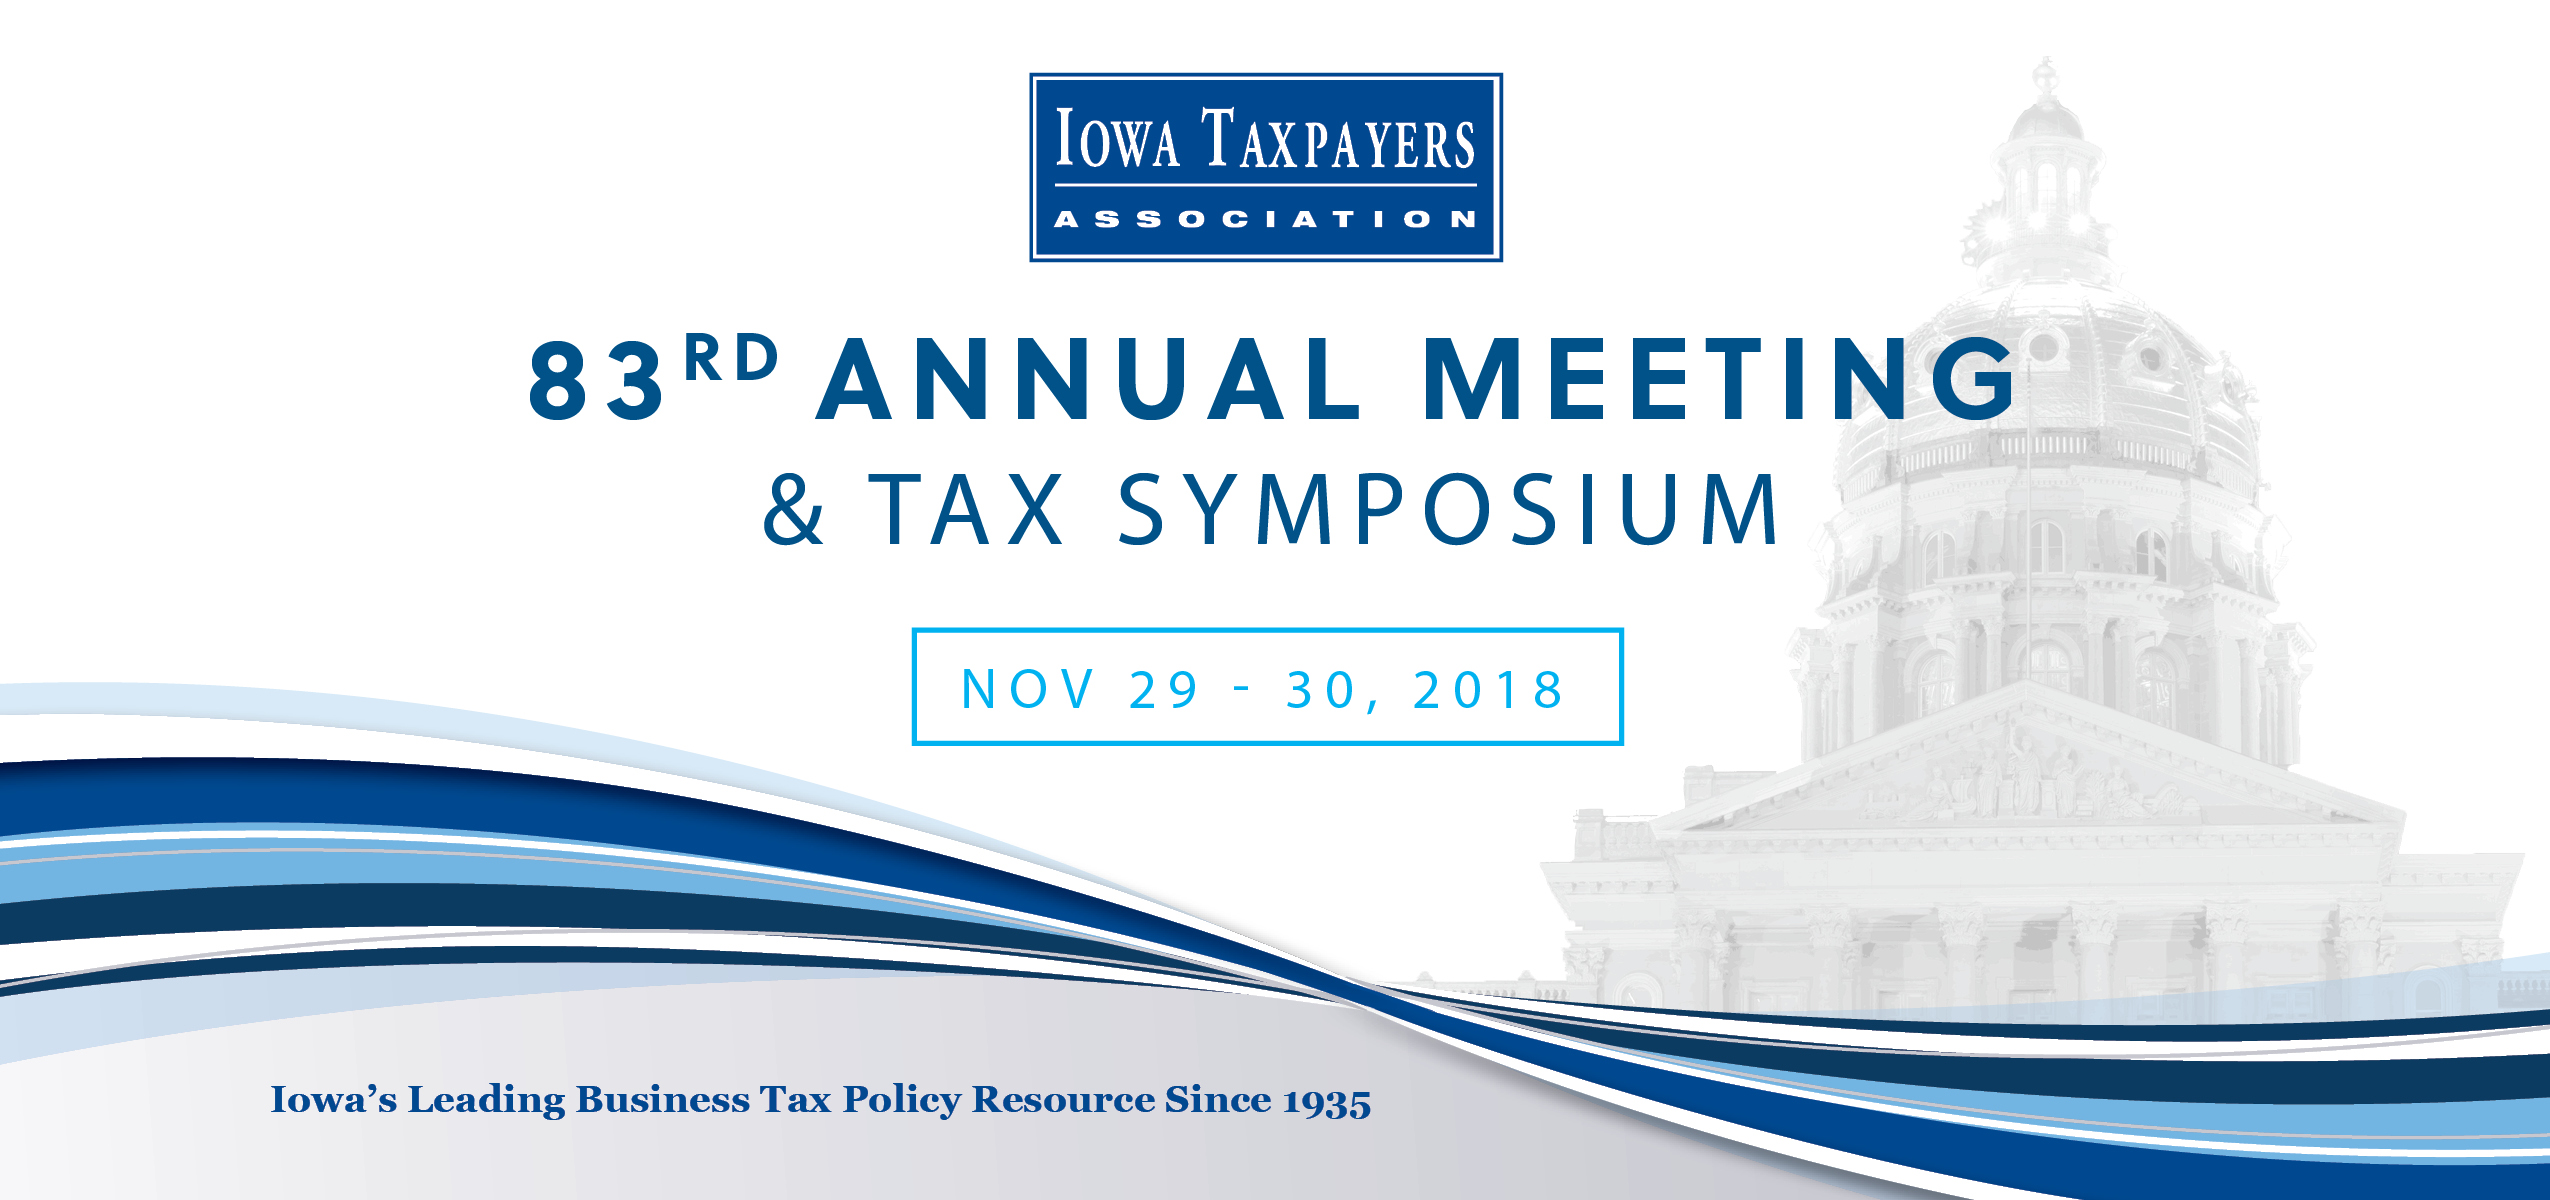 83rd Annual Meeting & Tax Symposium